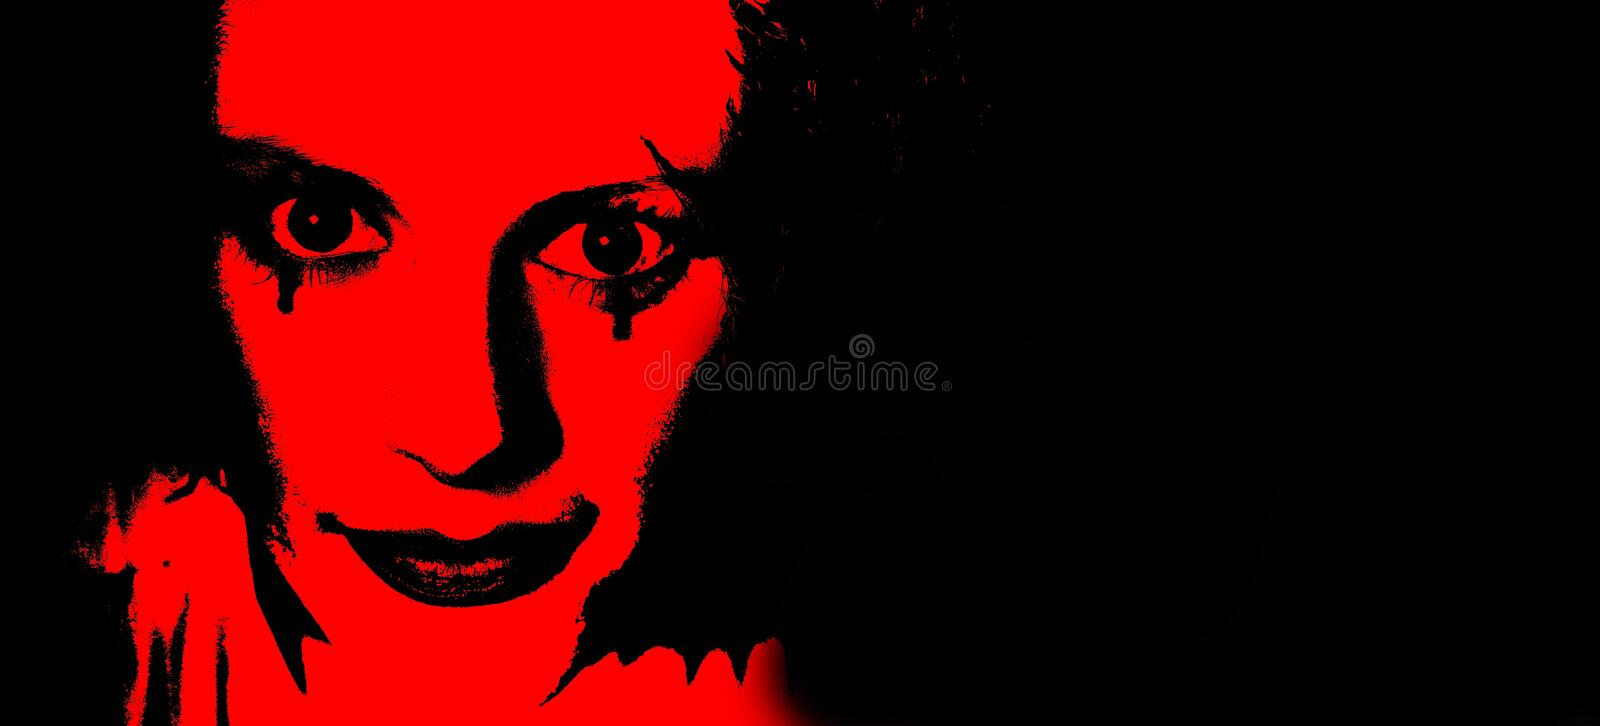 Red, Black, Art, Fictional Character stock images